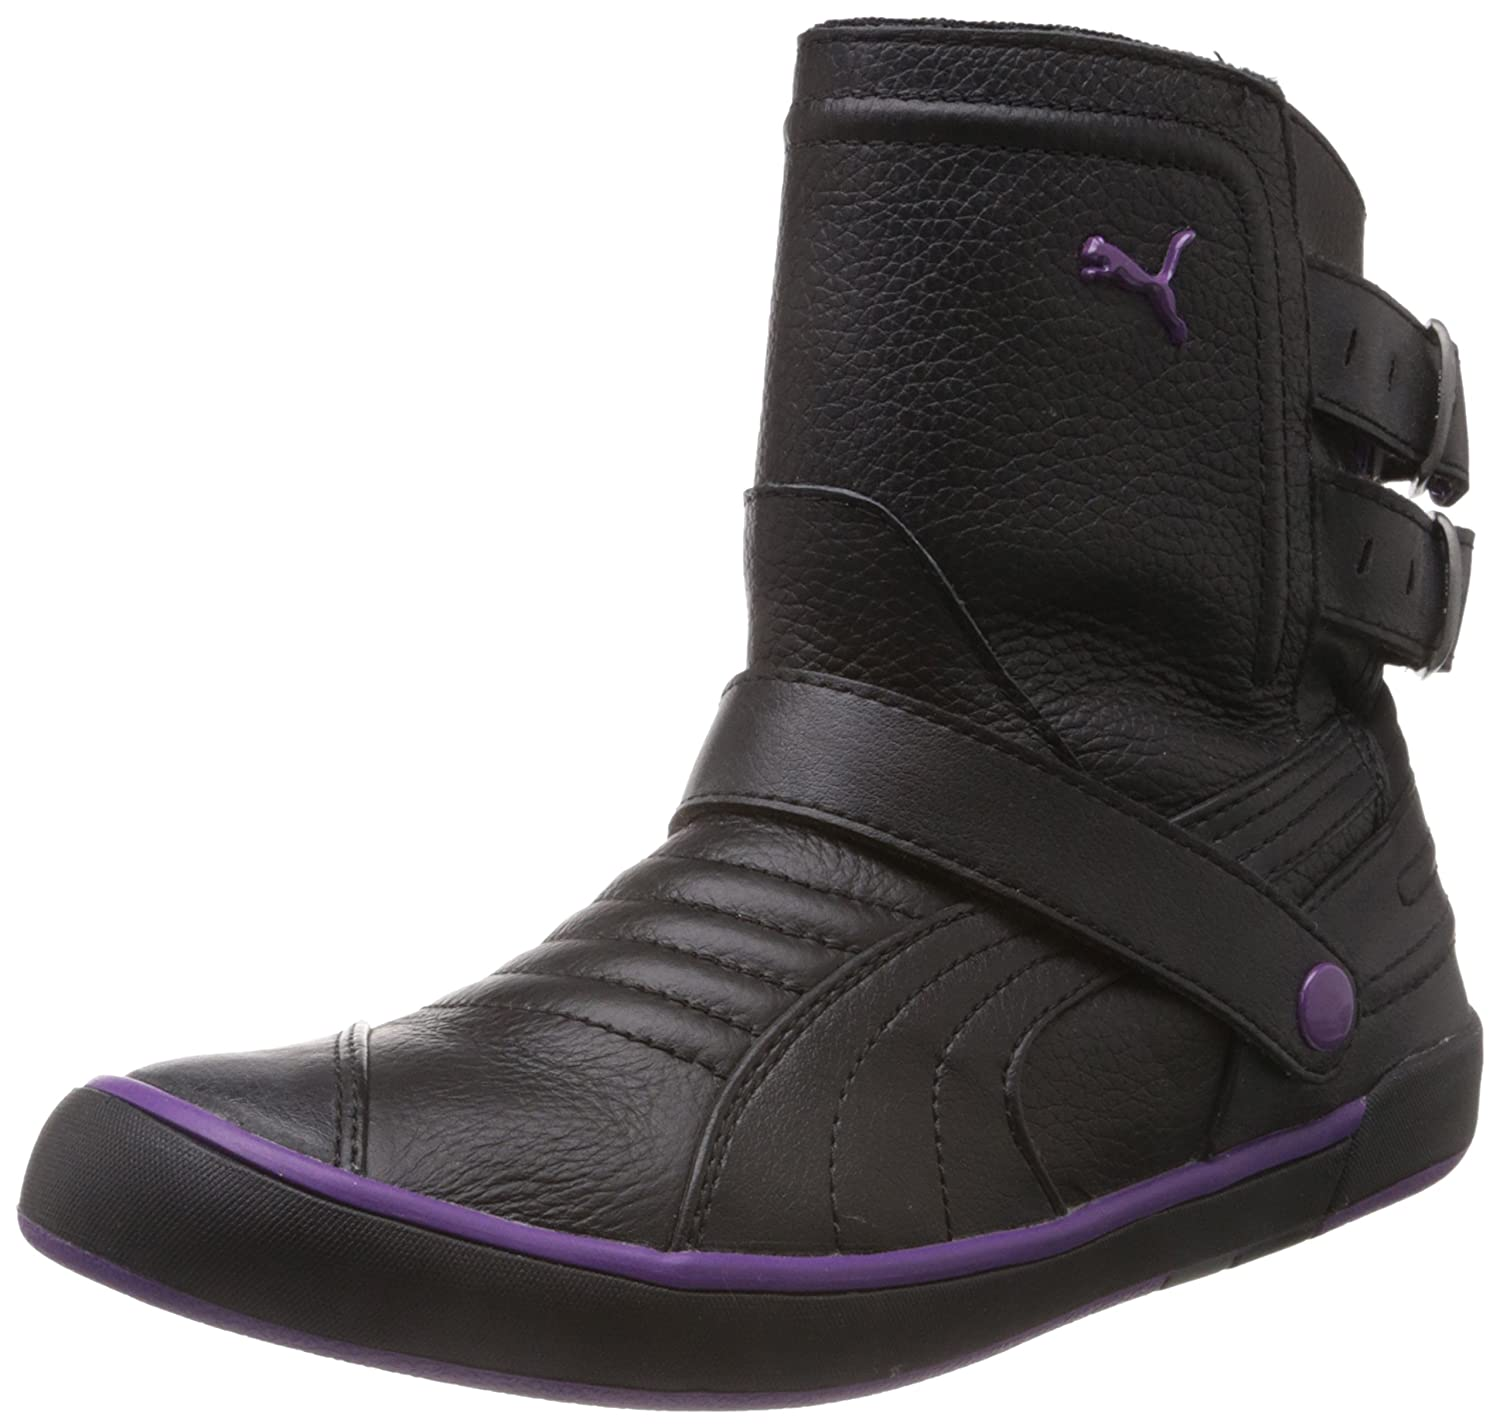 Zooney Mid Women's Boots Review 4